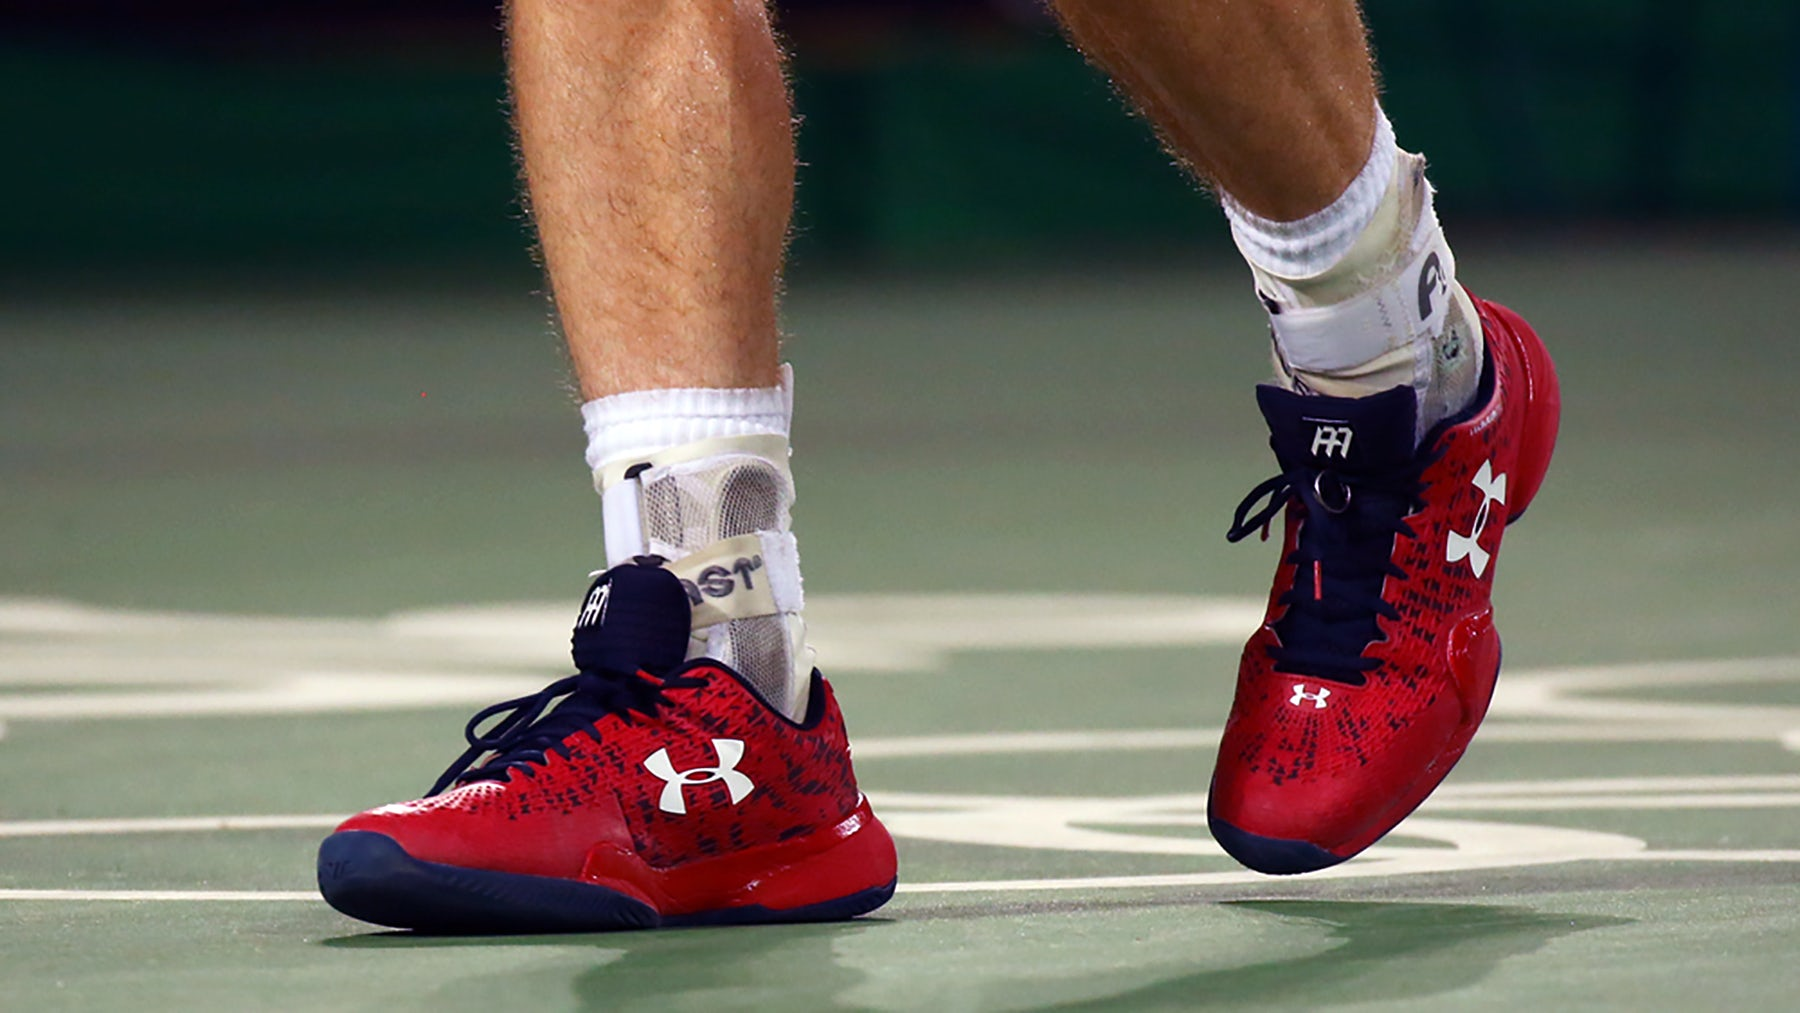 Under Armour sneakers | Source: Shutterstock